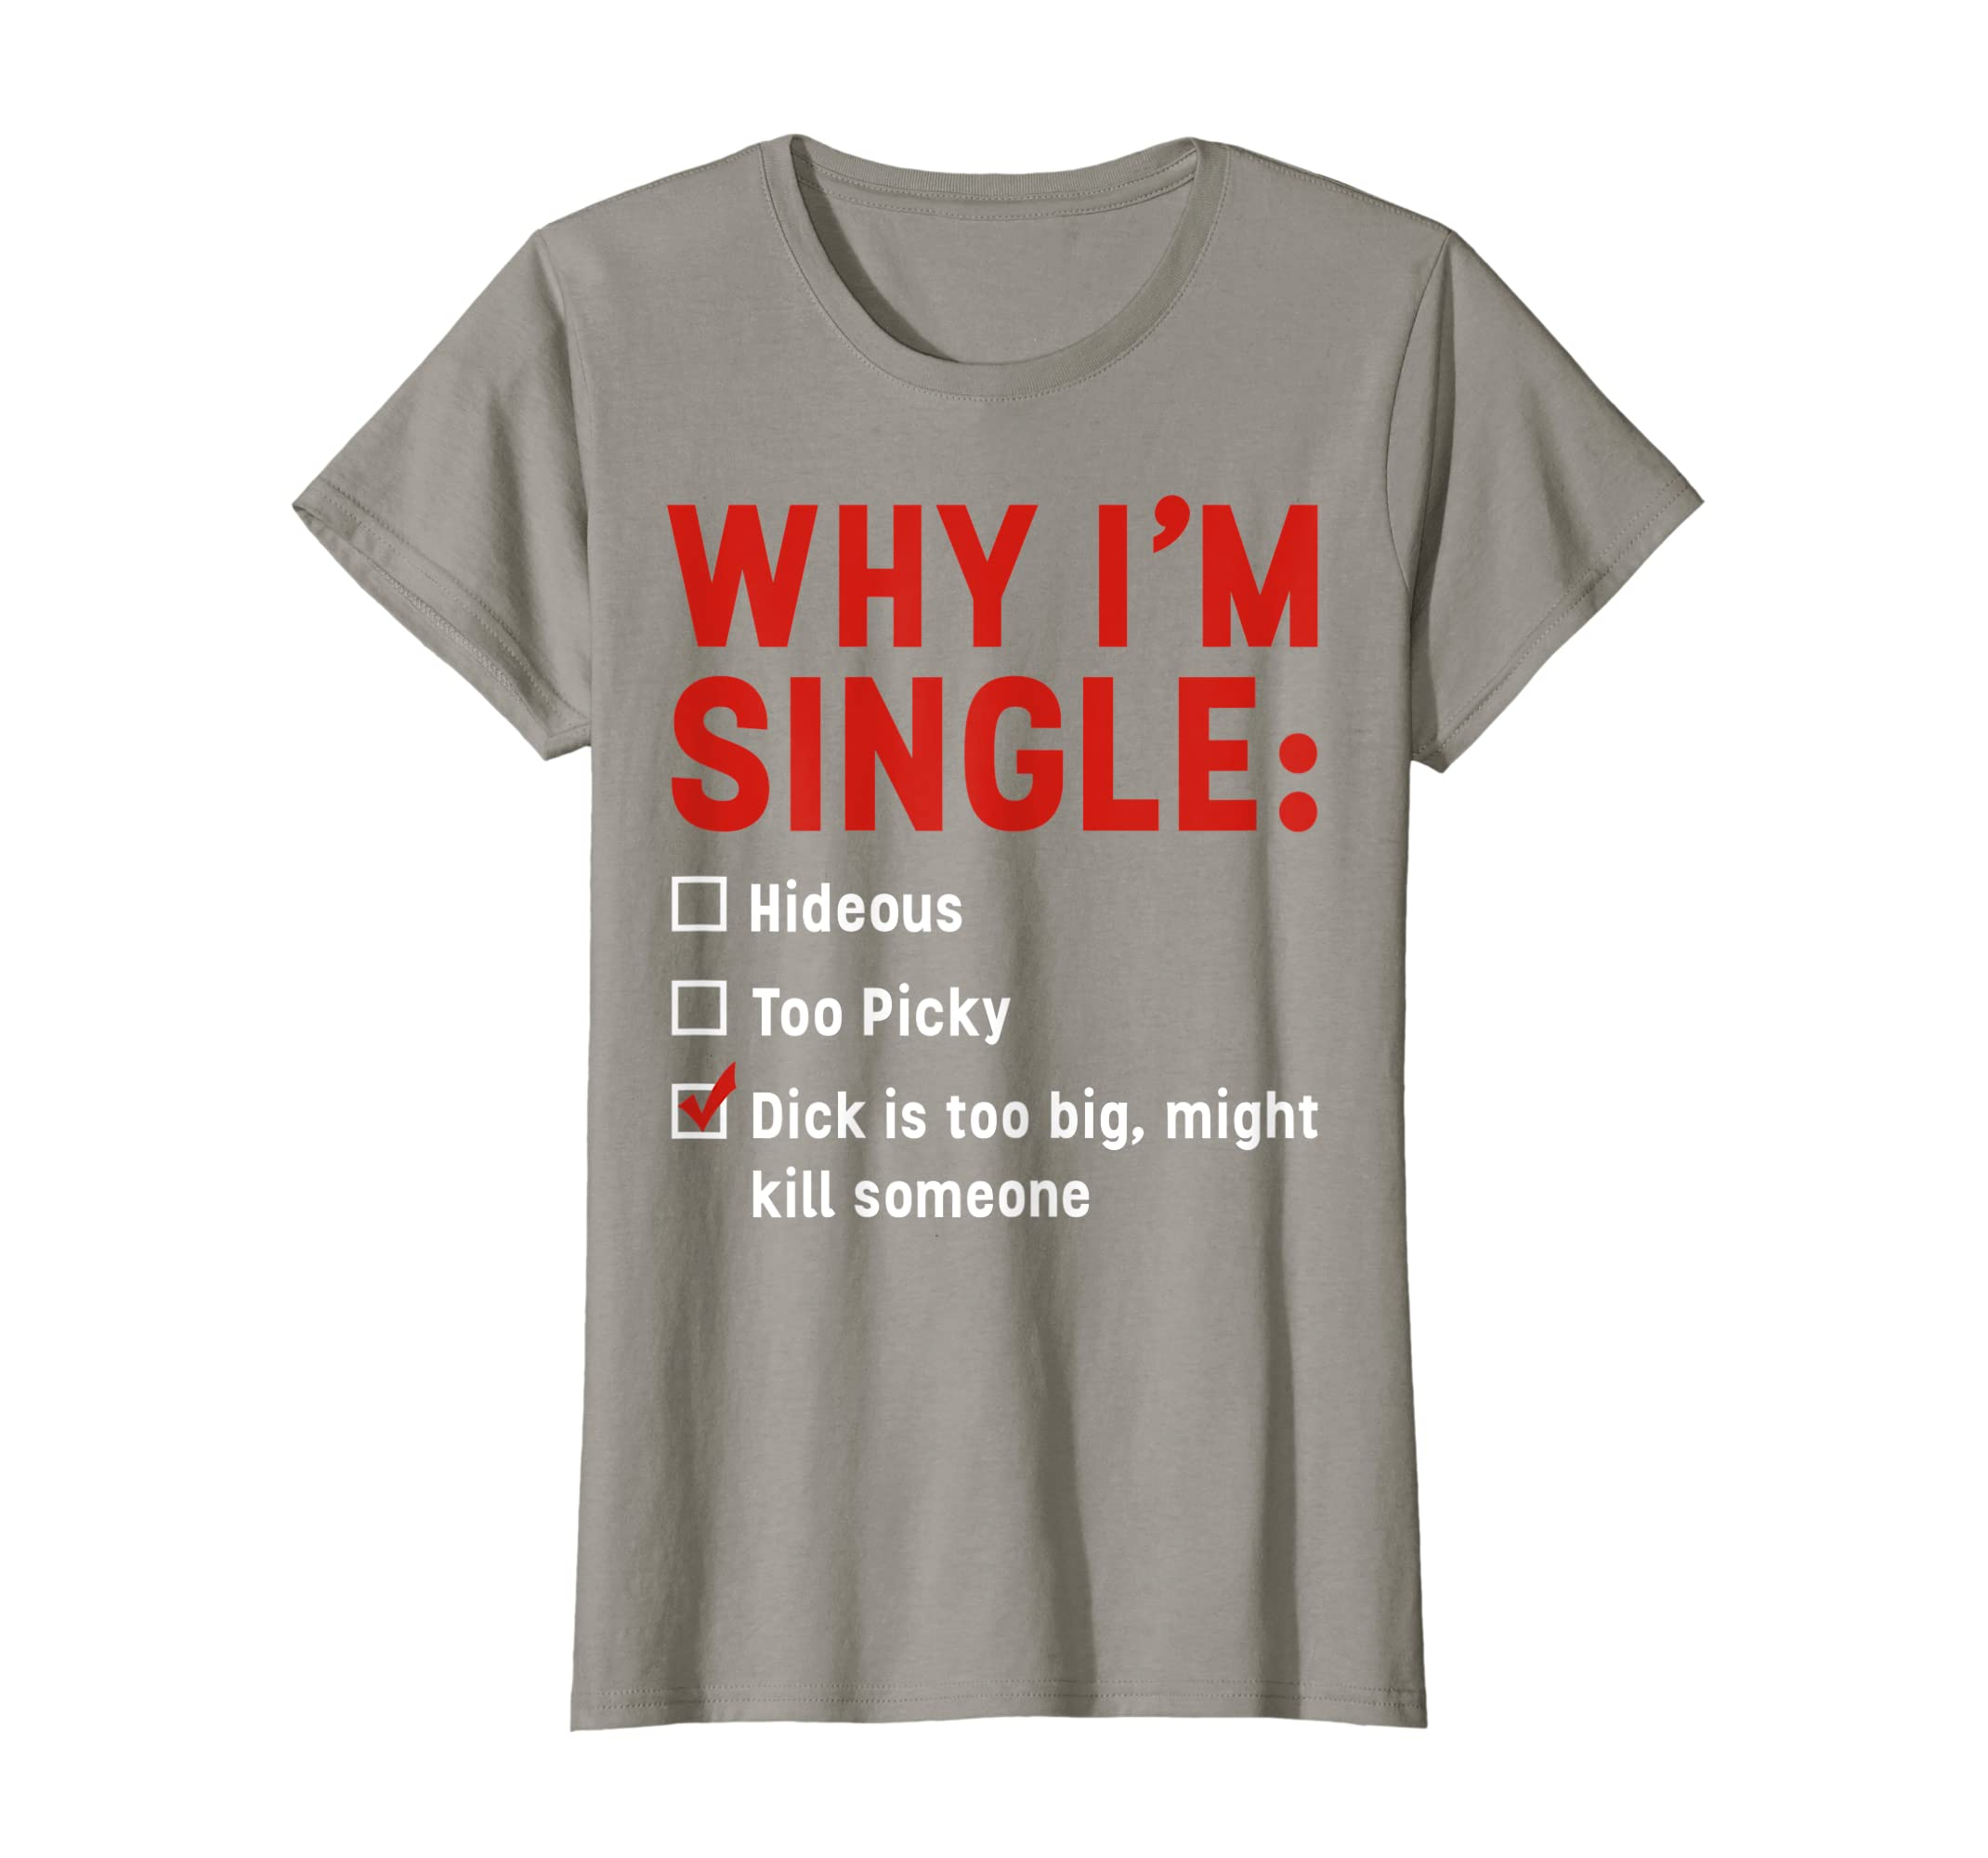 99b1b232 Amazon.com: WHY I'M SINGLE T-SHIRT: Clothing